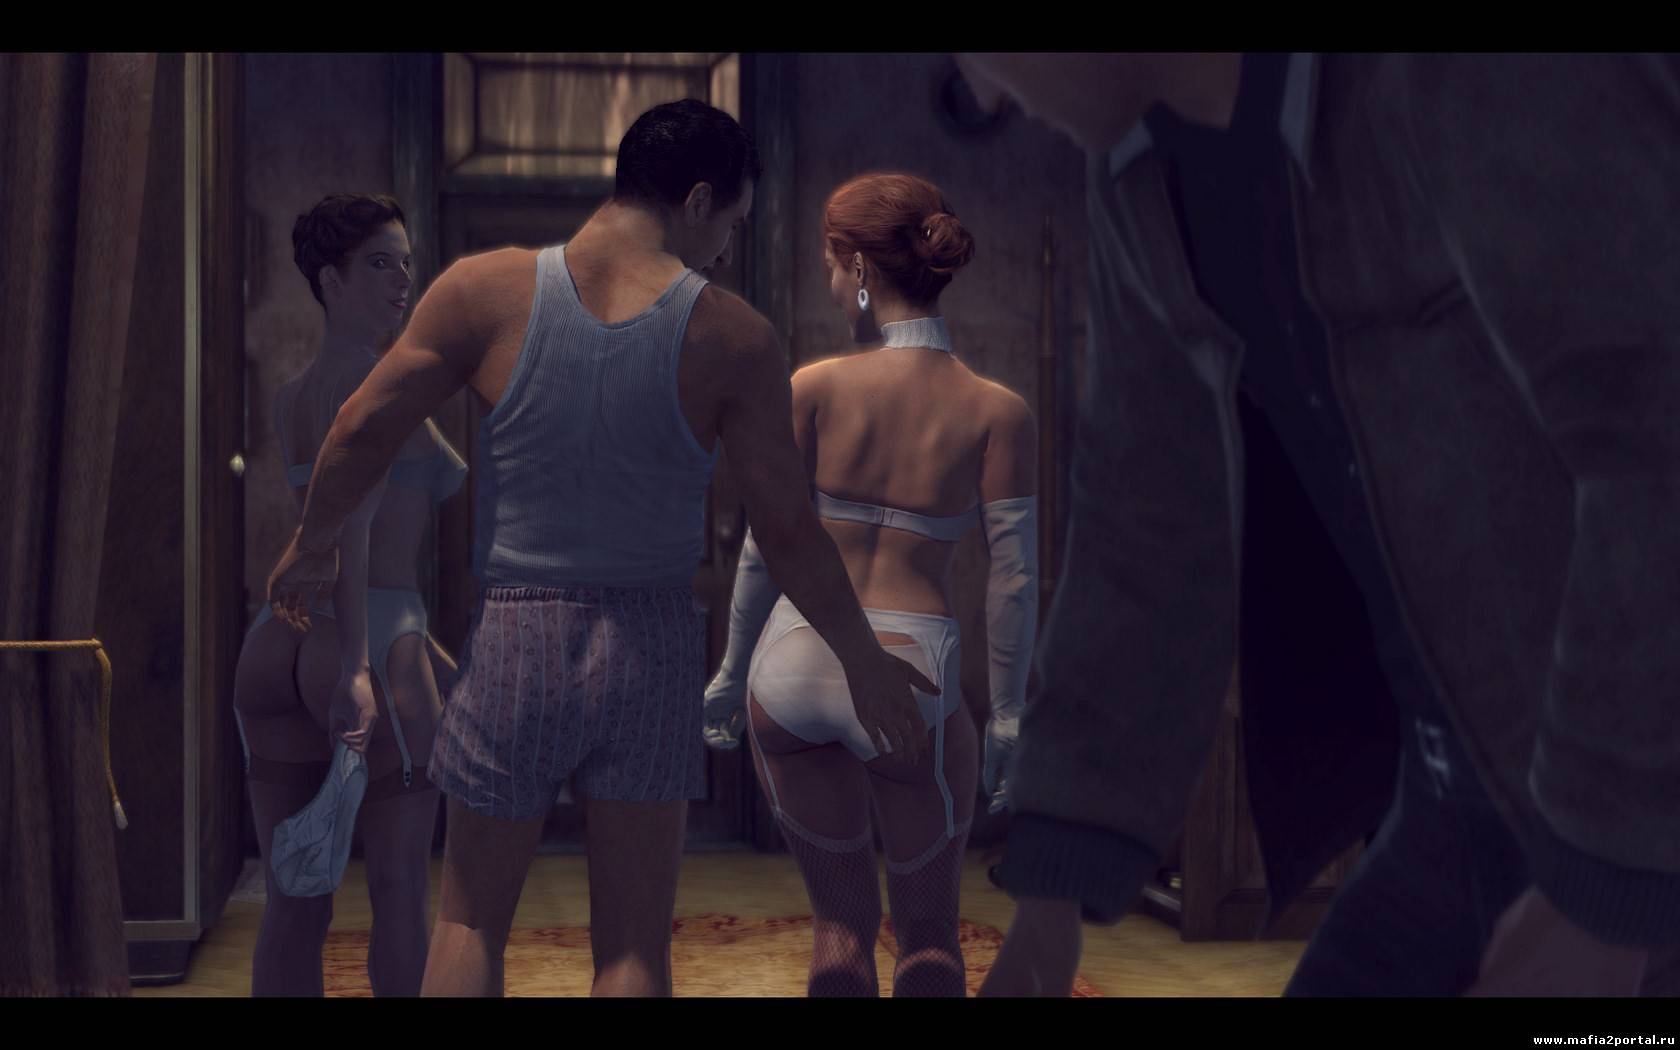 Mafia ii nudity sex image